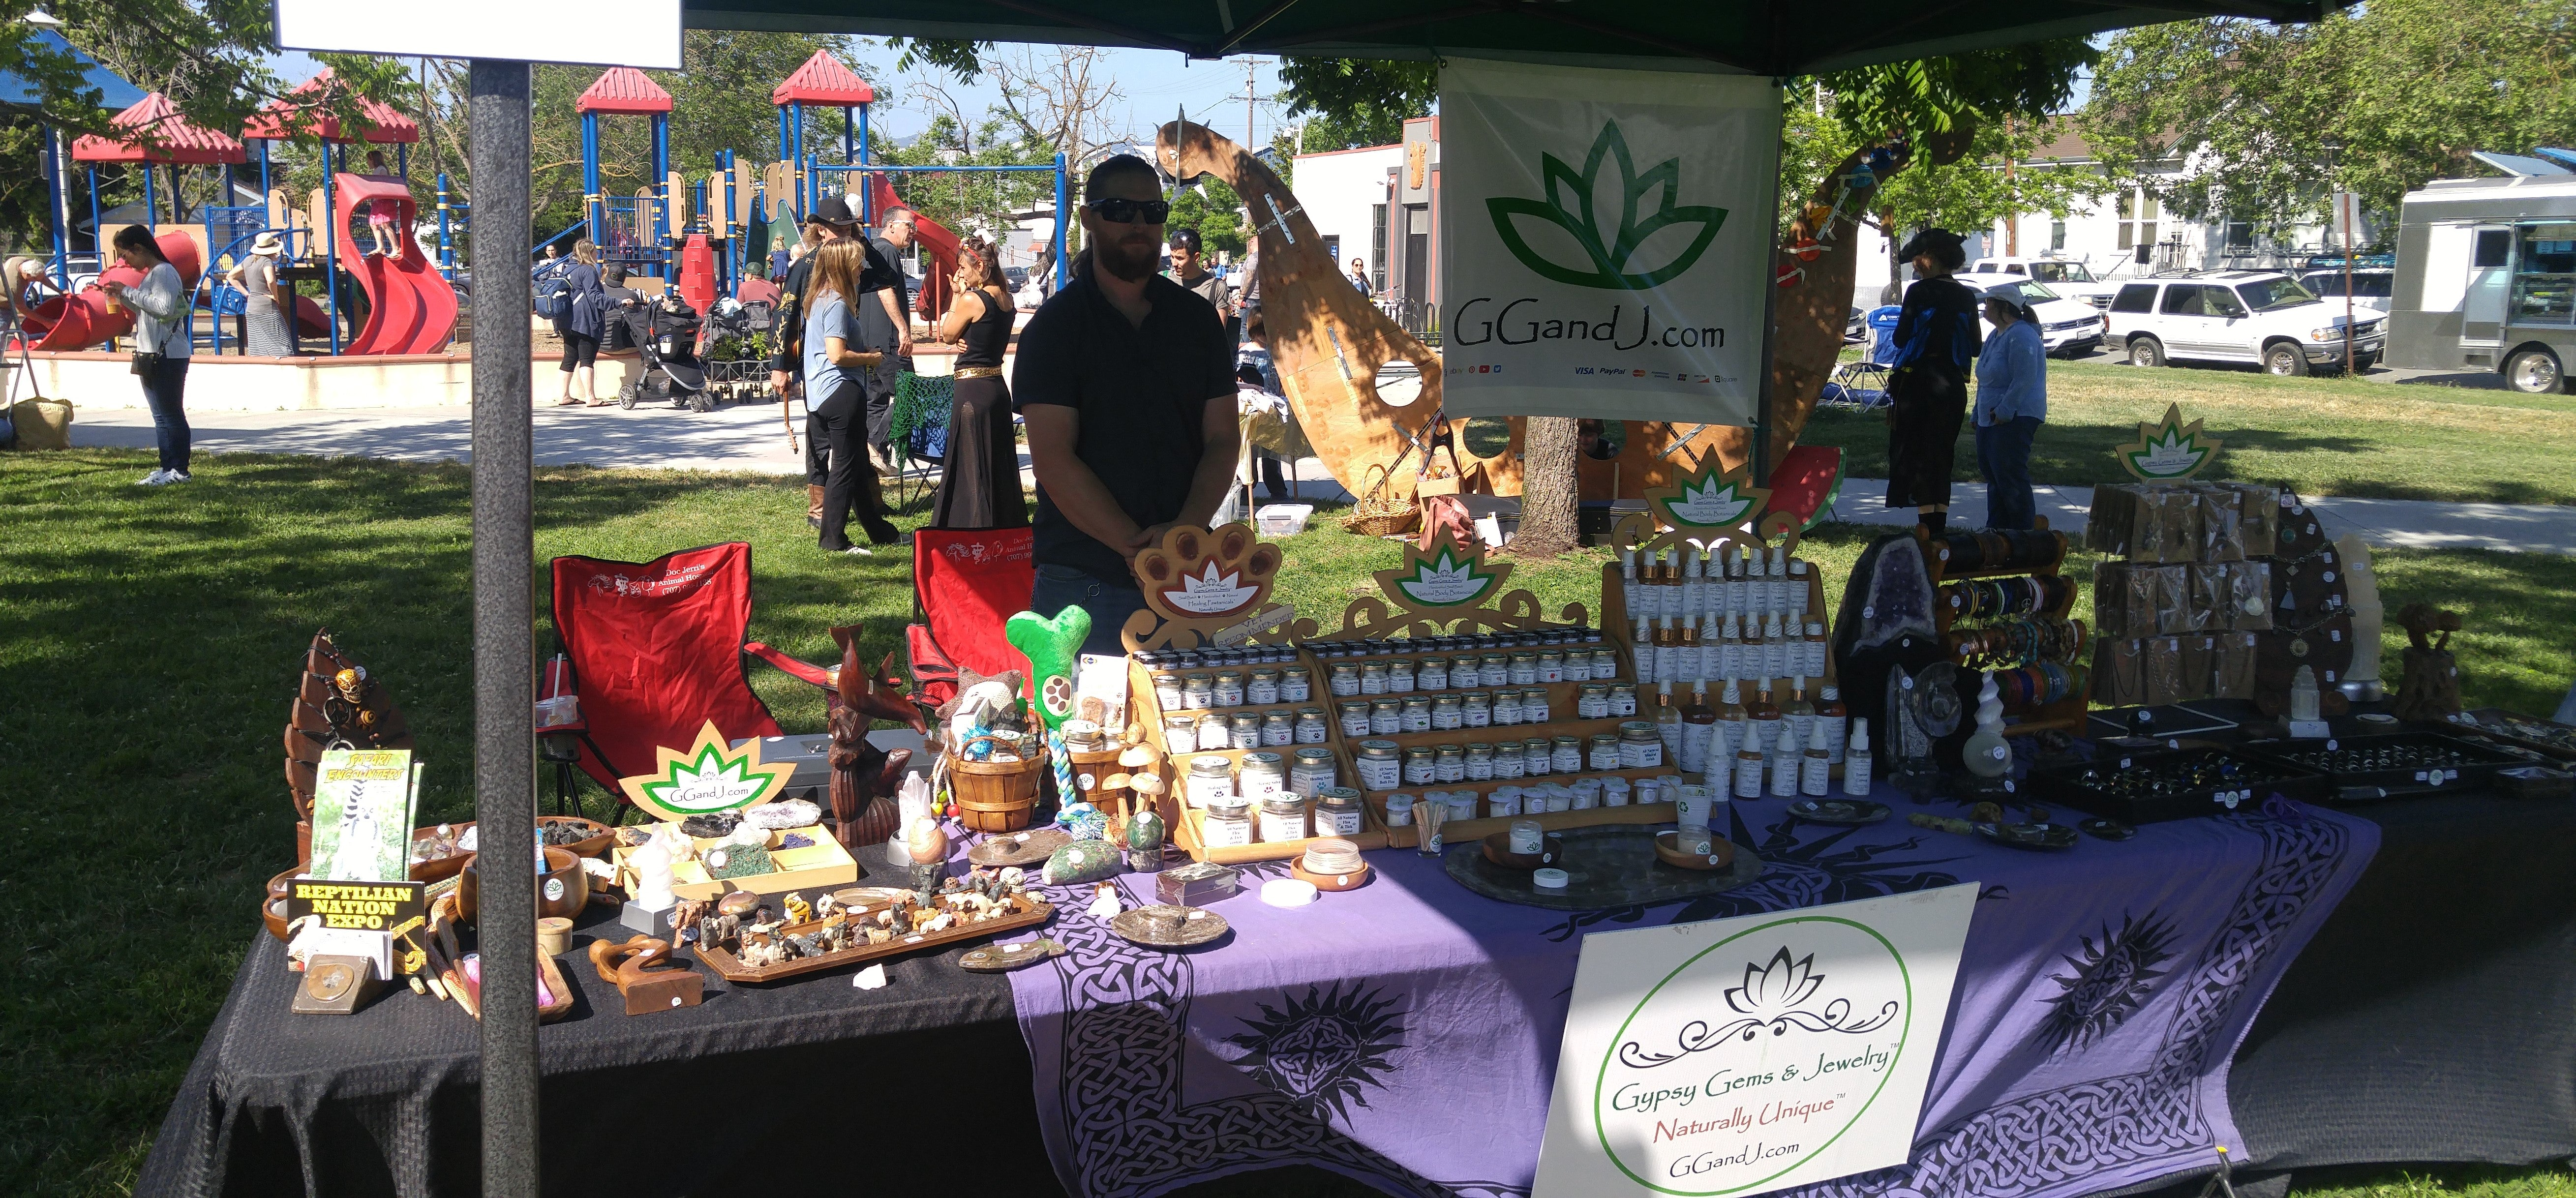 Walnut Park Petaluma Farmer Market 2019 Gypsy Gems and Jewelry